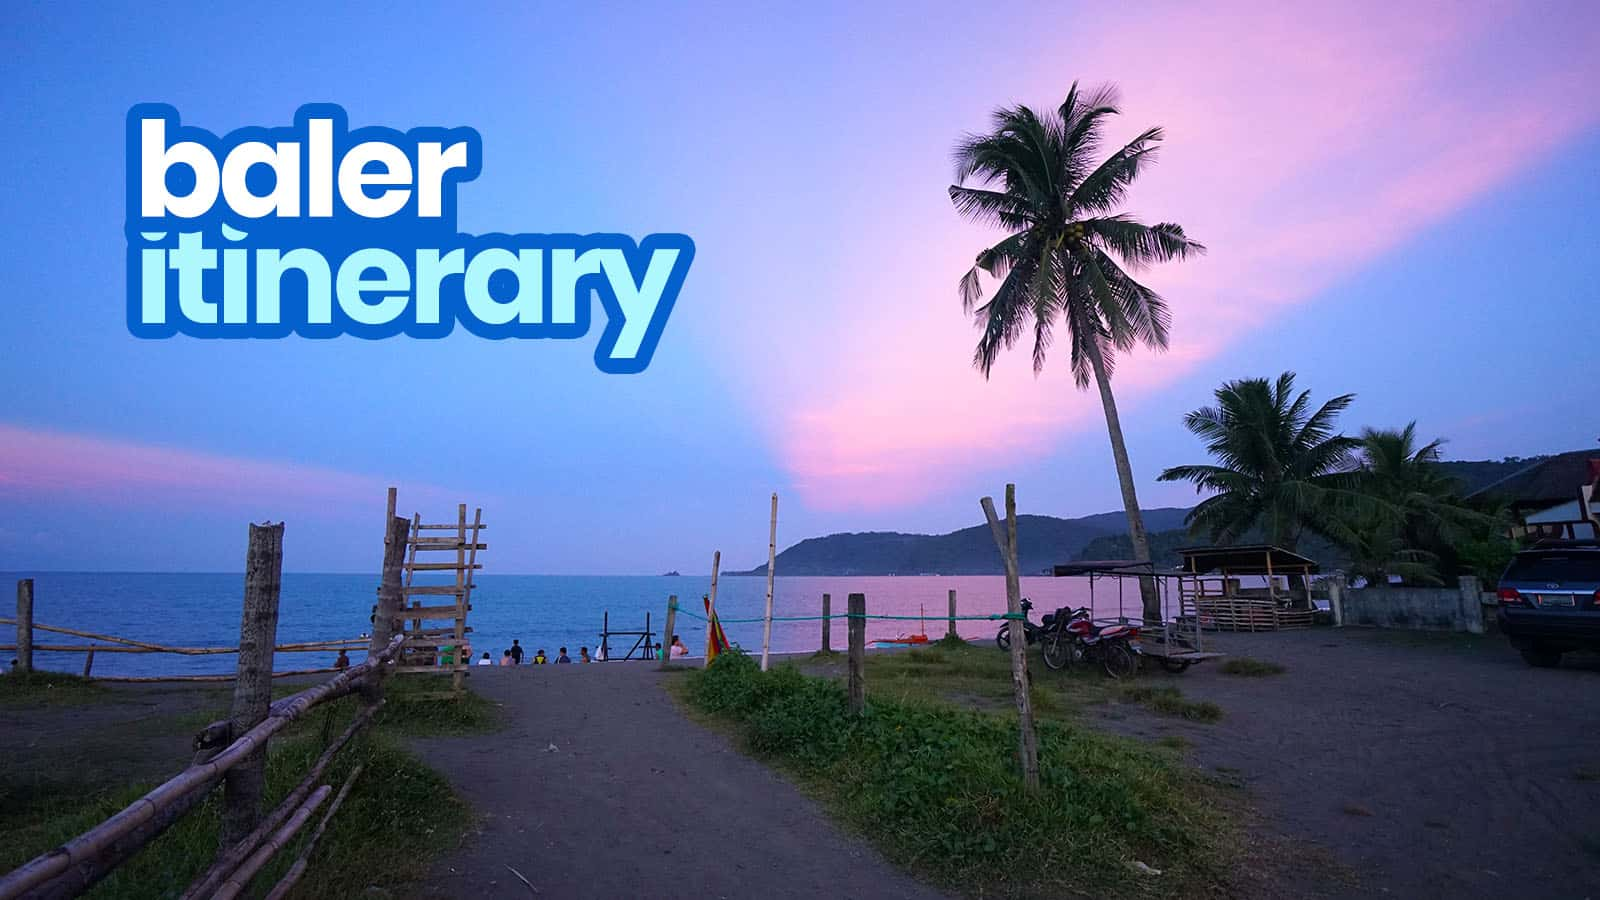 BALER ITINERARY: 14 Best Things to Do & Places to Visit